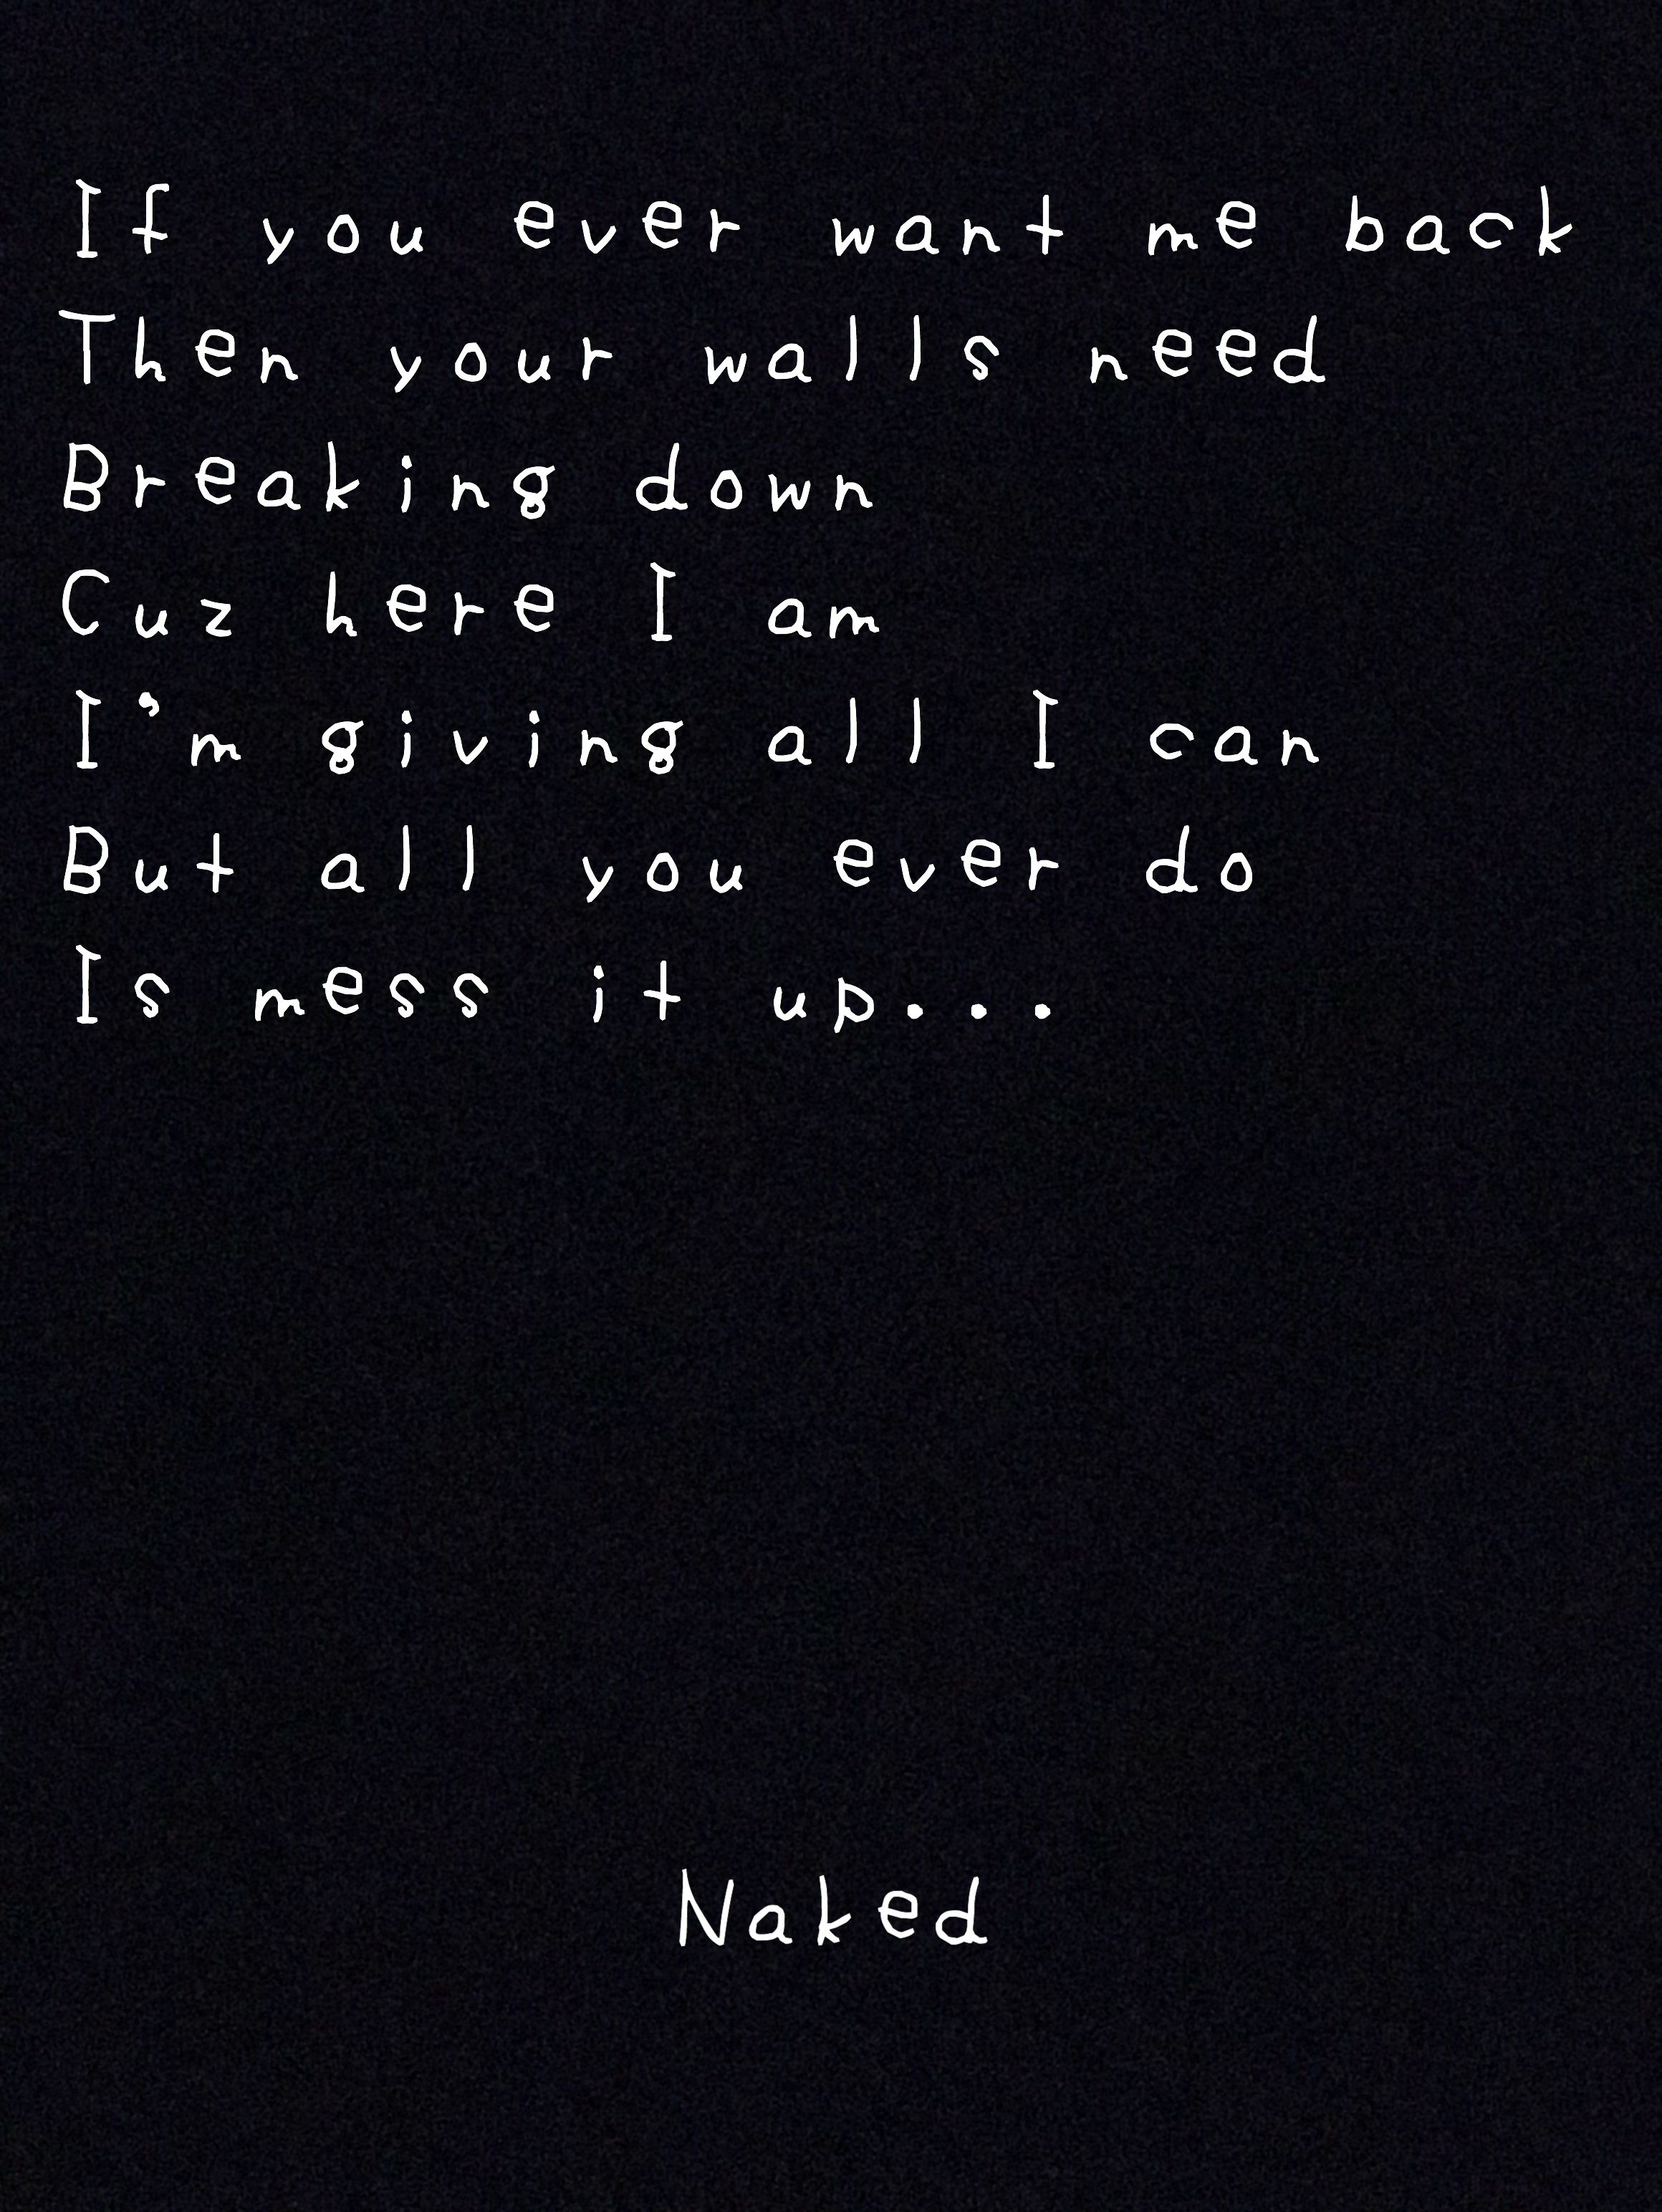 What shall just get naked lyric point